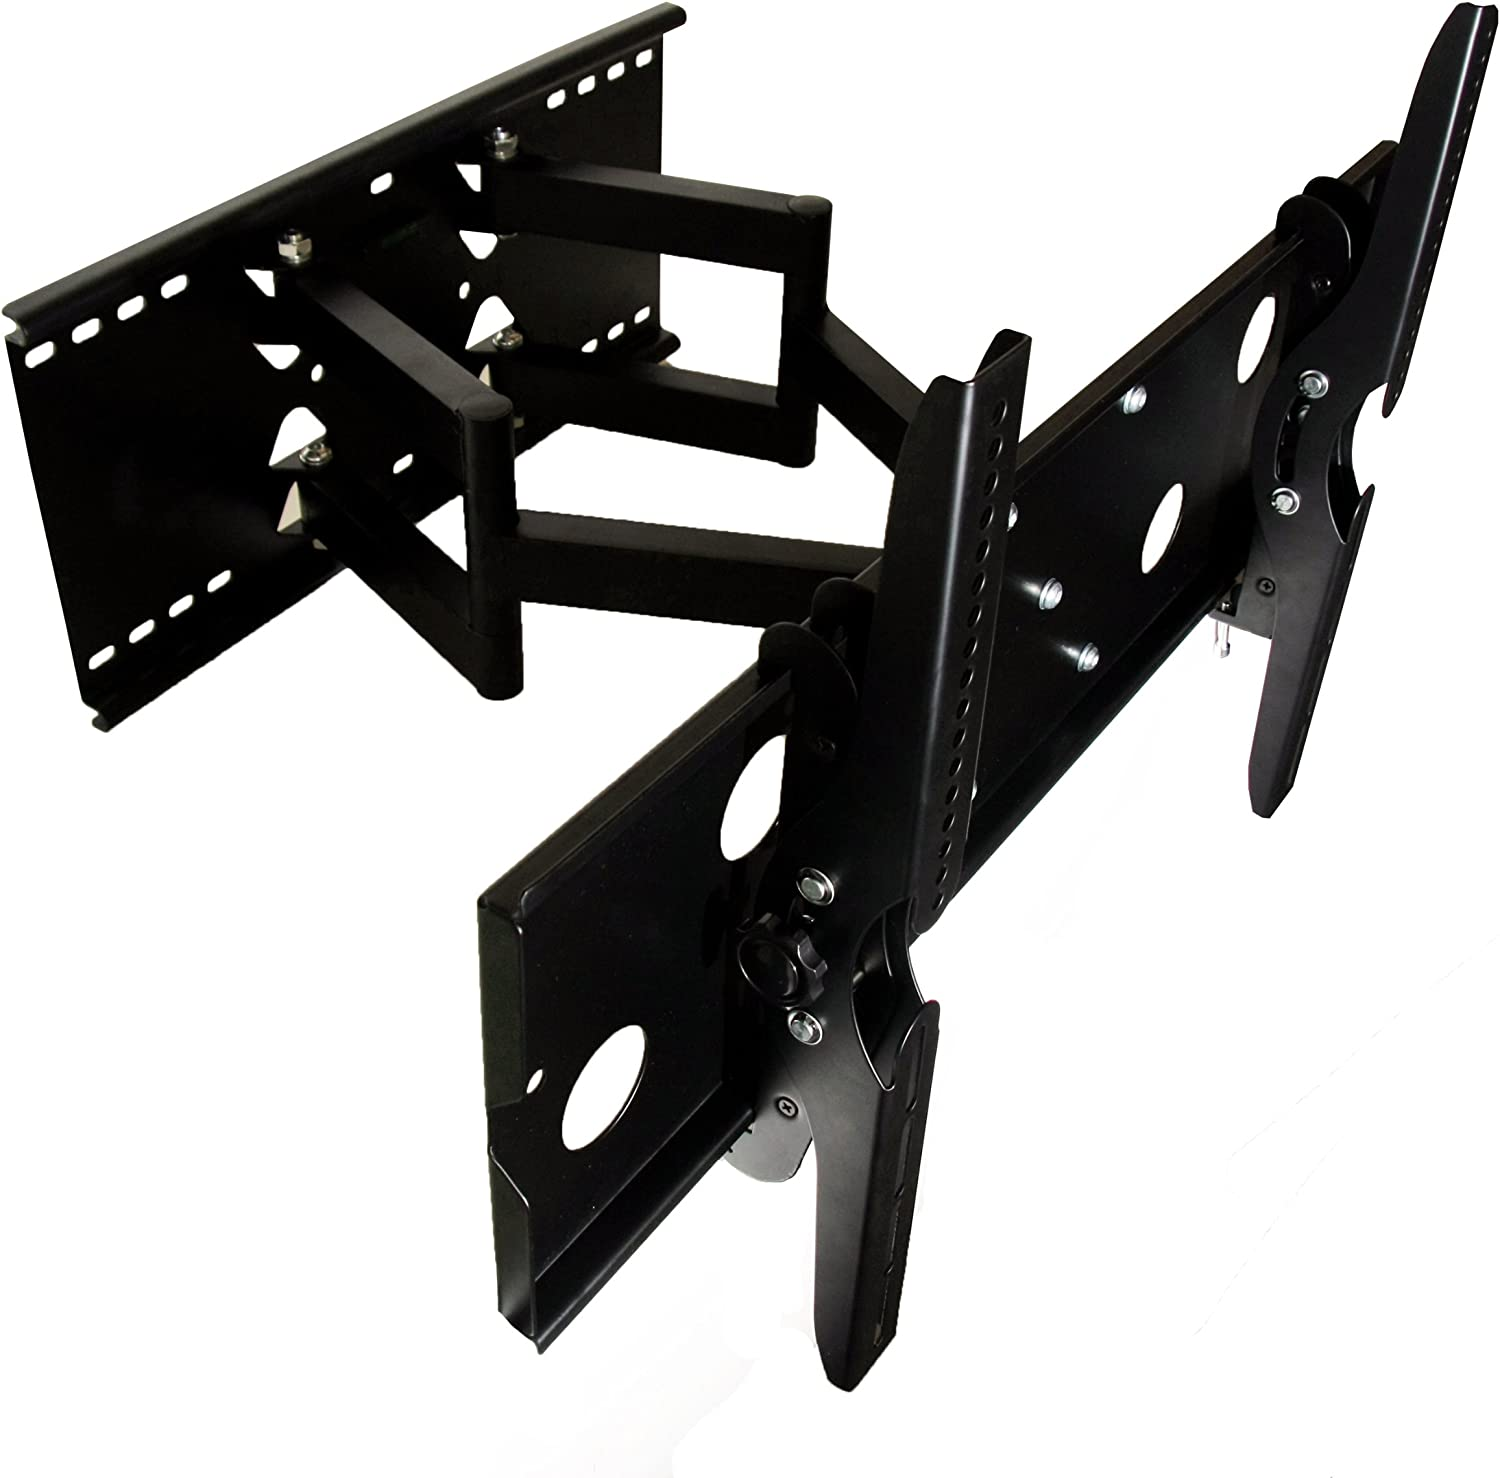 Articulating, Tilting, And Swiveling Tv Wall Mount For NEW SAMSUNG  55  Class (54.6  Diag.) LED 6000 Series Smart TV